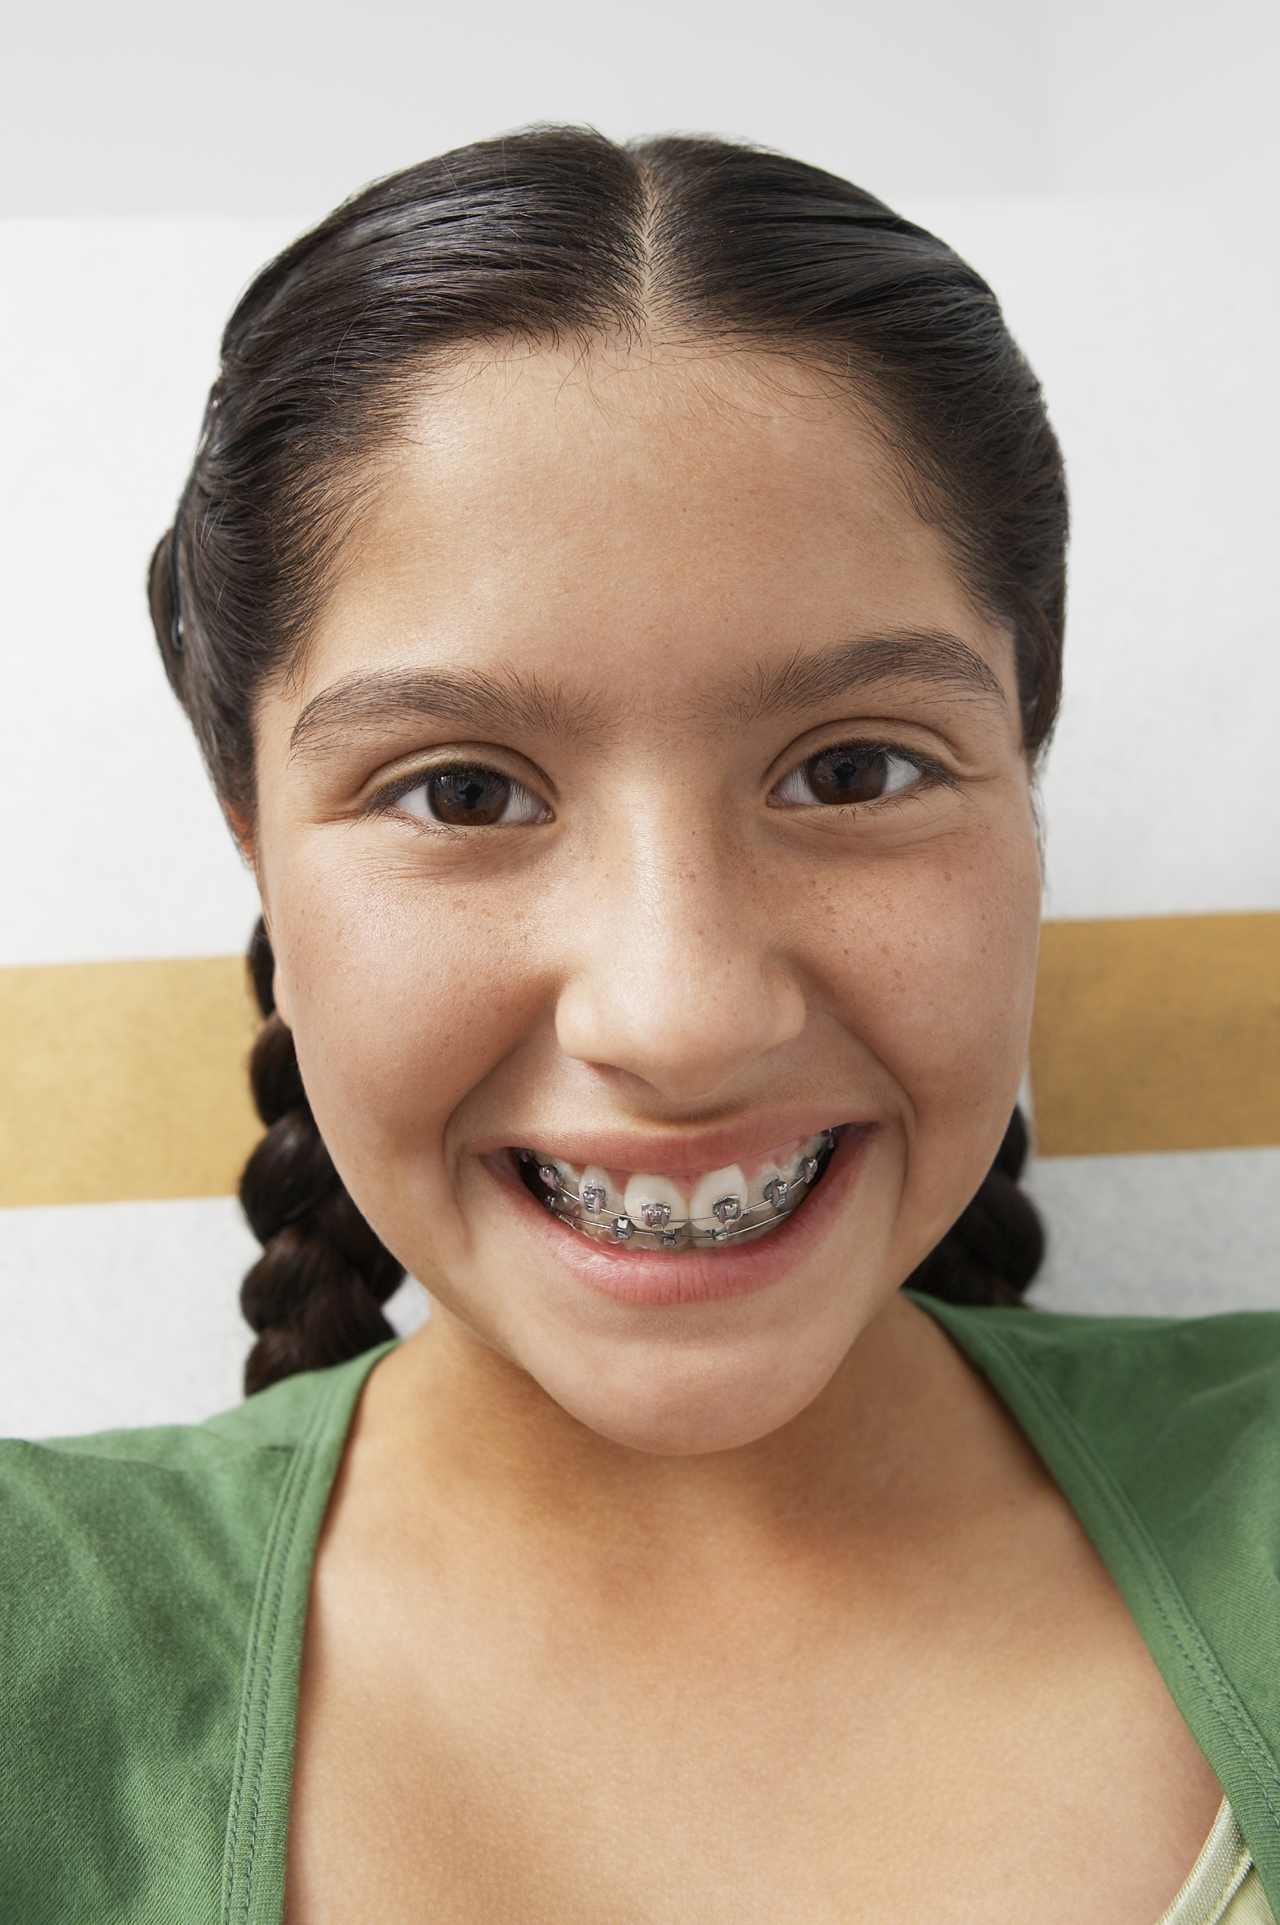 Orthodontic Elastics